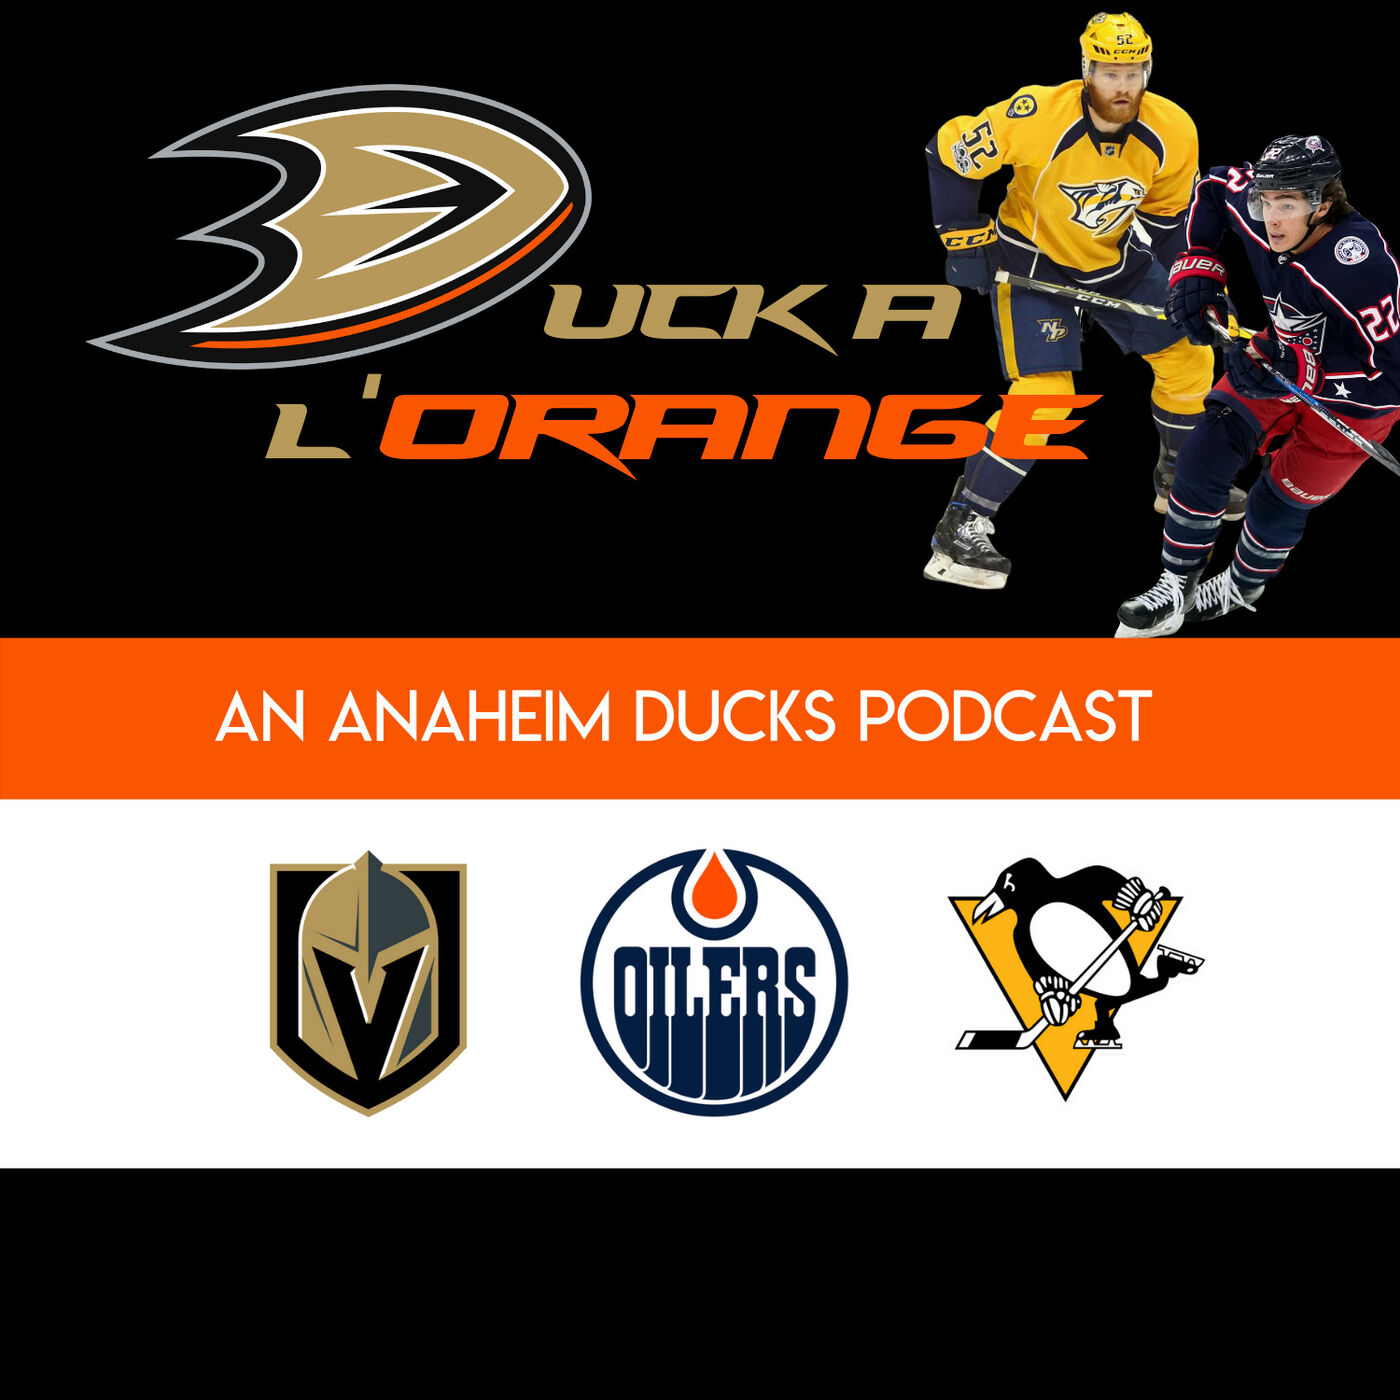 Episode#6: Don't Drink the Kool-Aid! Ducks are in a full-on REBUILD! Ducks @ 26-30-8 (6th Pacific)